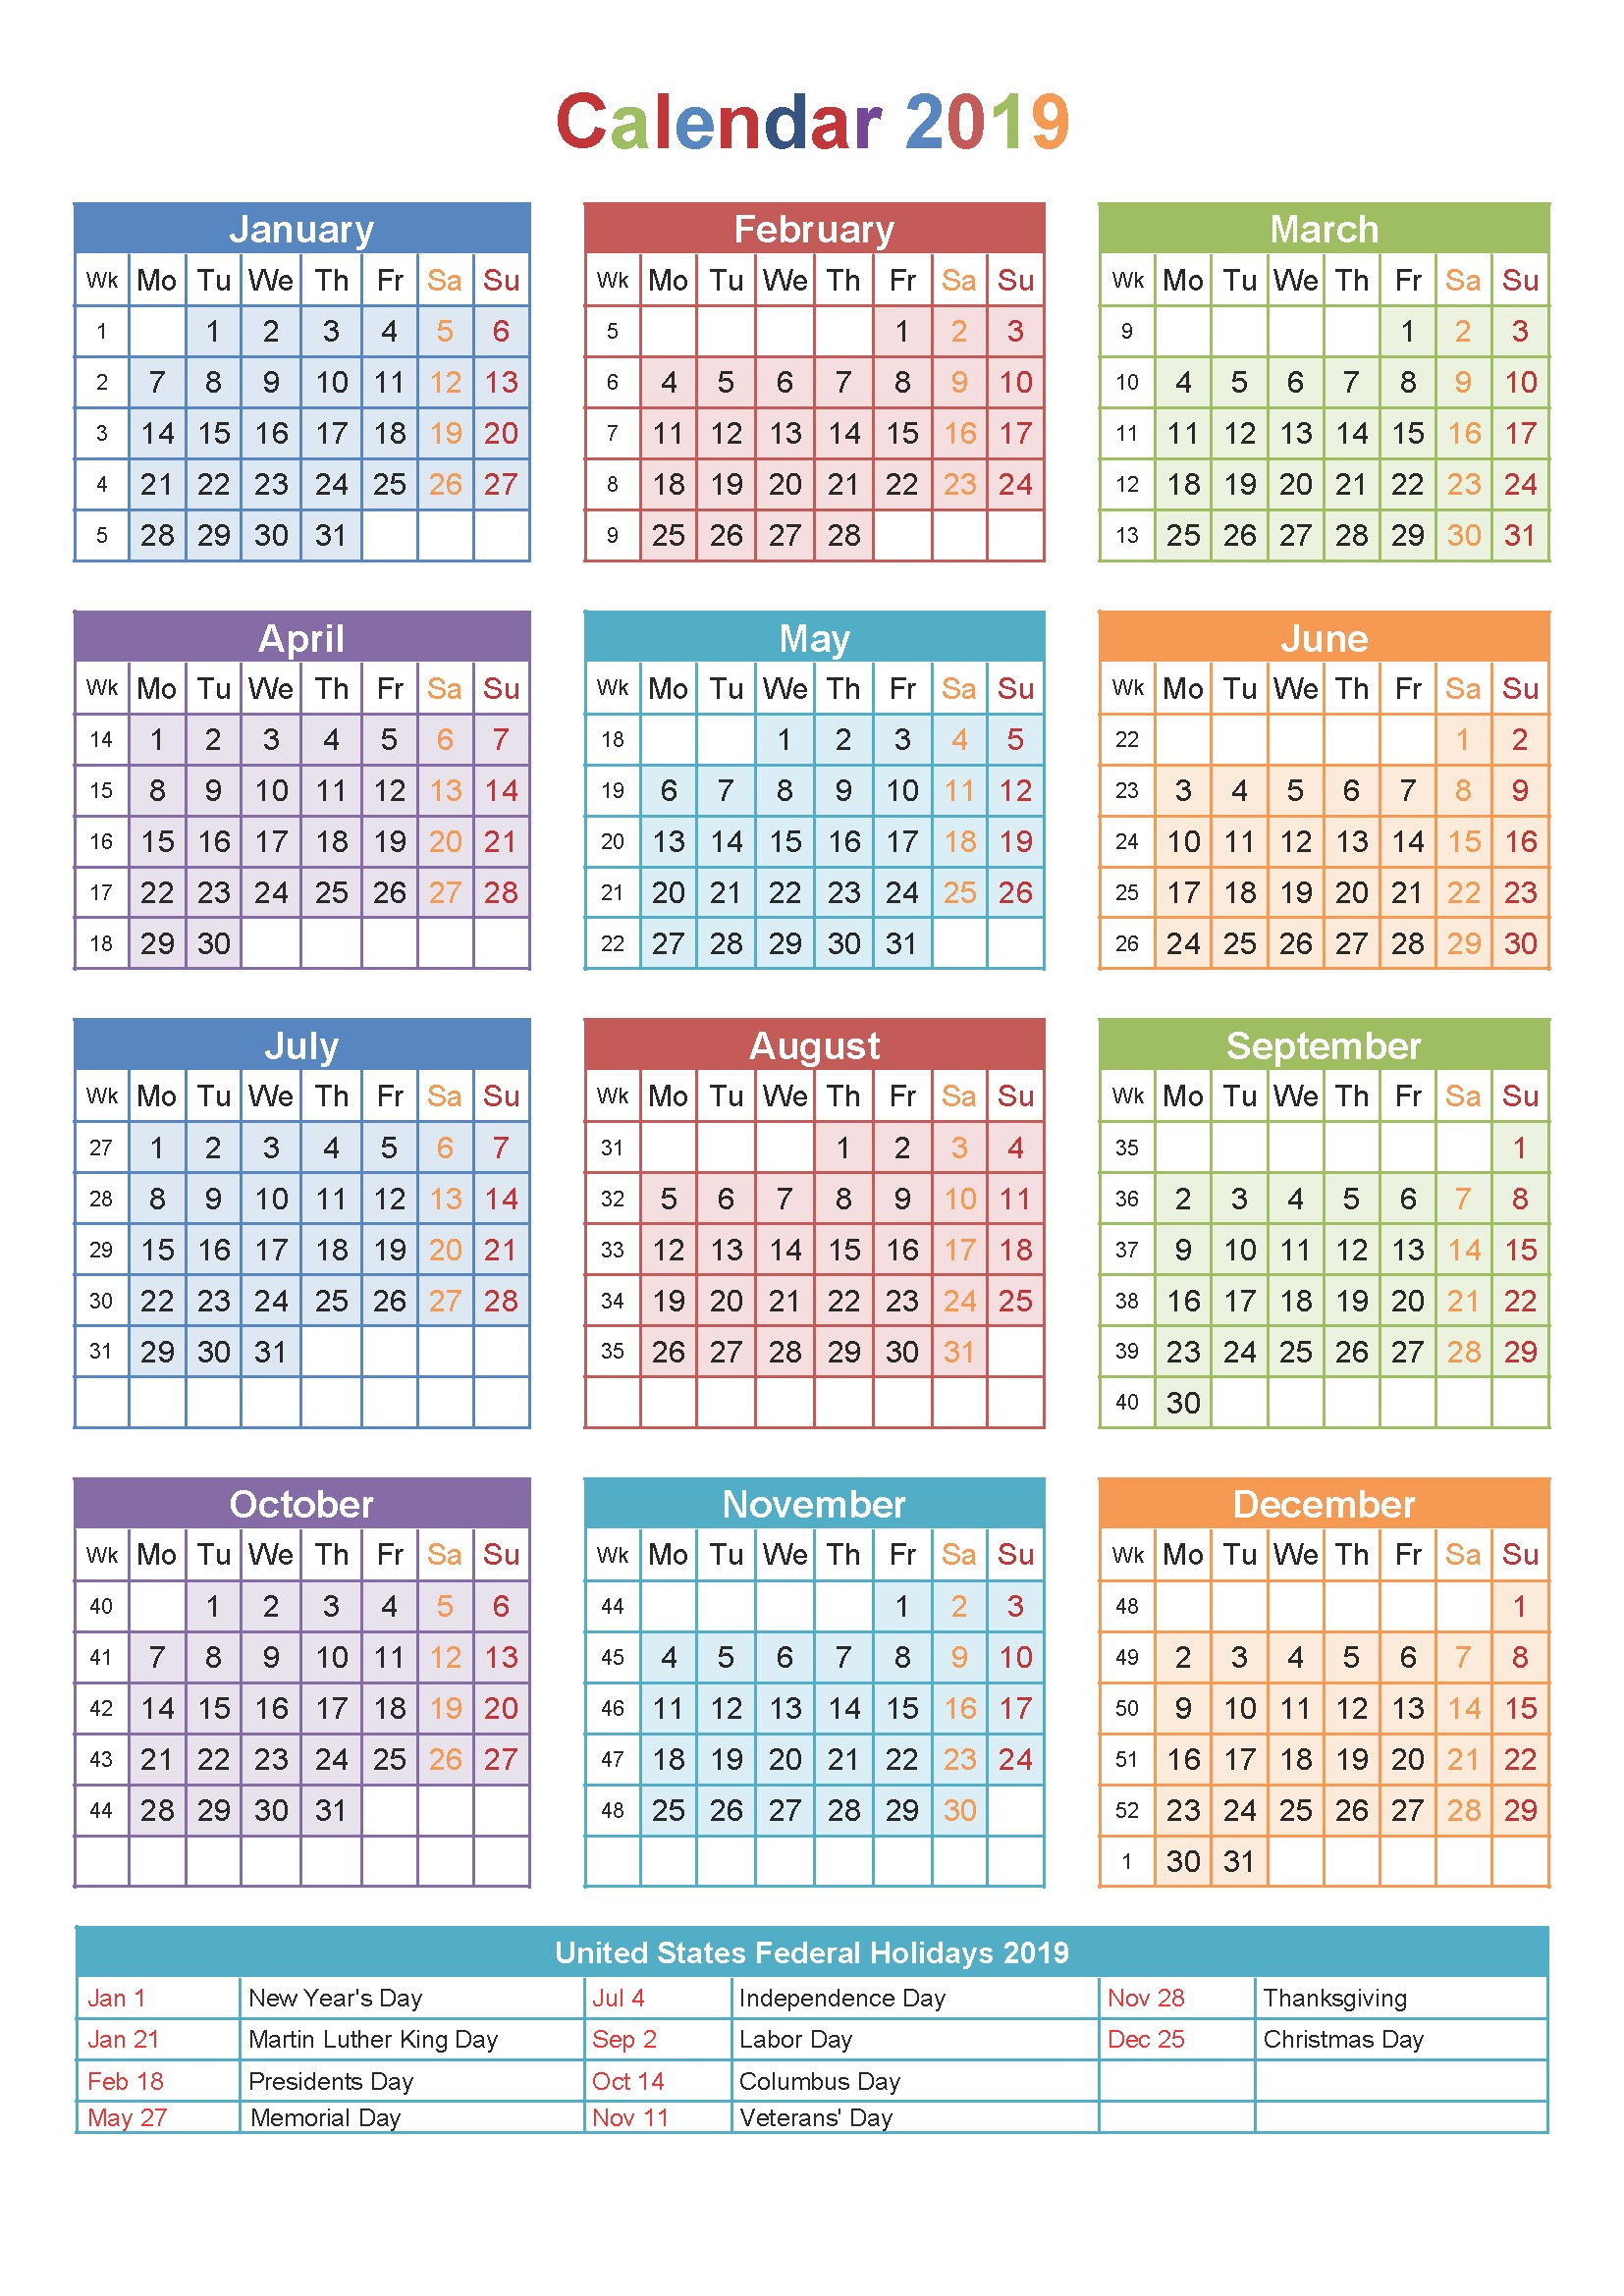 March 2019 Calendar Uk Printable Mejores Y Más Novedosos Coloring Pages Calendar with Federal Holidaysble Three Year Excel Of March 2019 Calendar Uk Printable Más Recientemente Liberado June 2019 Calendar Word Lara Expolicenciaslatam